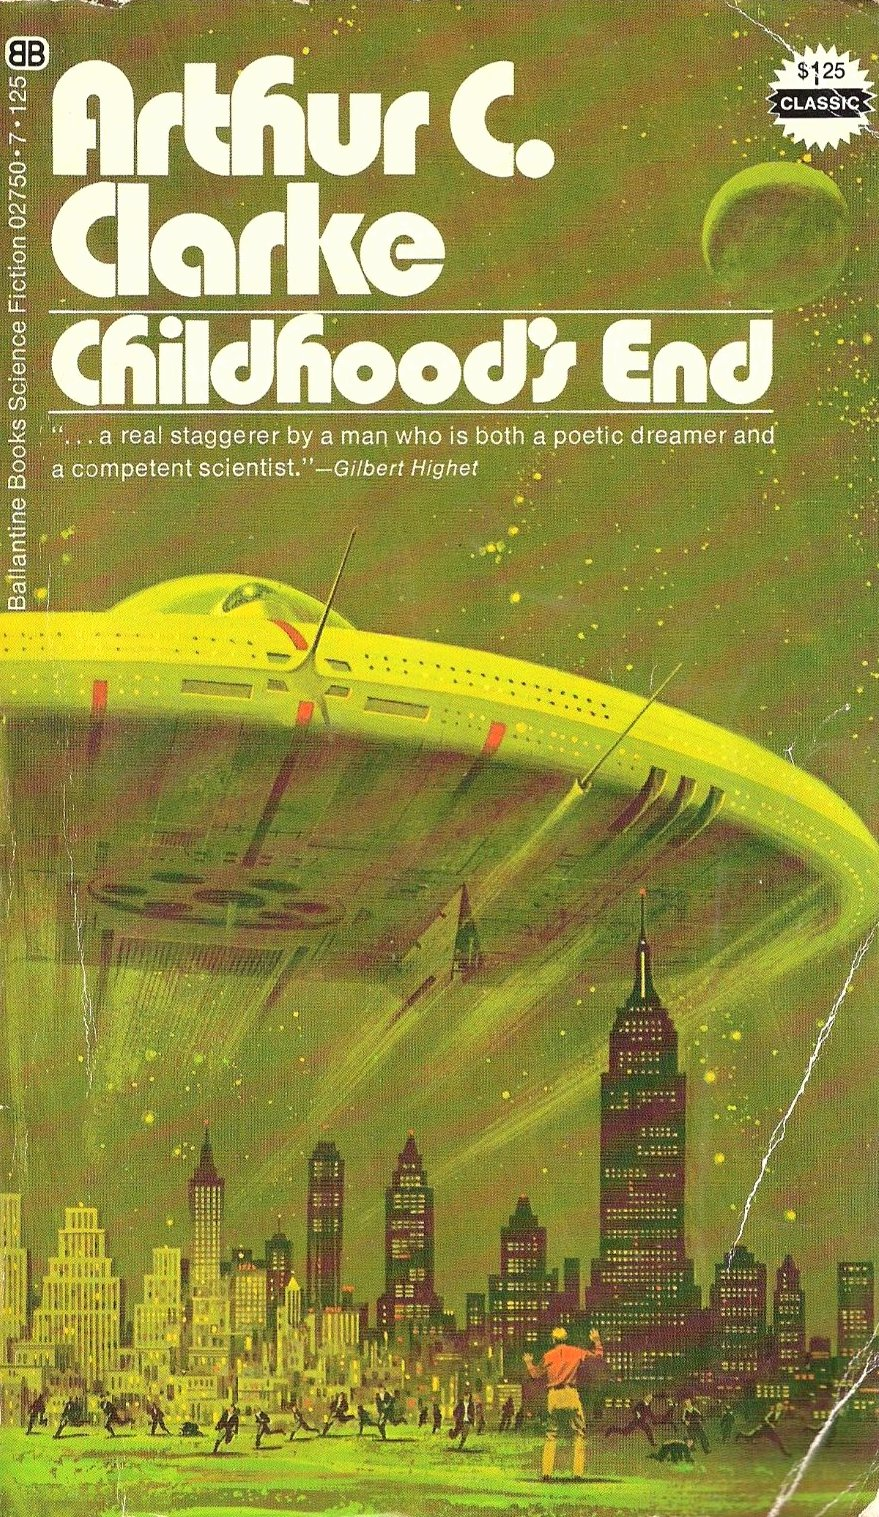 an analysis of the novel childhoods ends by arthur c clarke ~book~ full childhood's end by arthur c clarke itunes thepiratebay price mp3 français buy full fb2 read childhood's end by arthur c clarke online childhood's end by arthur c clarke.